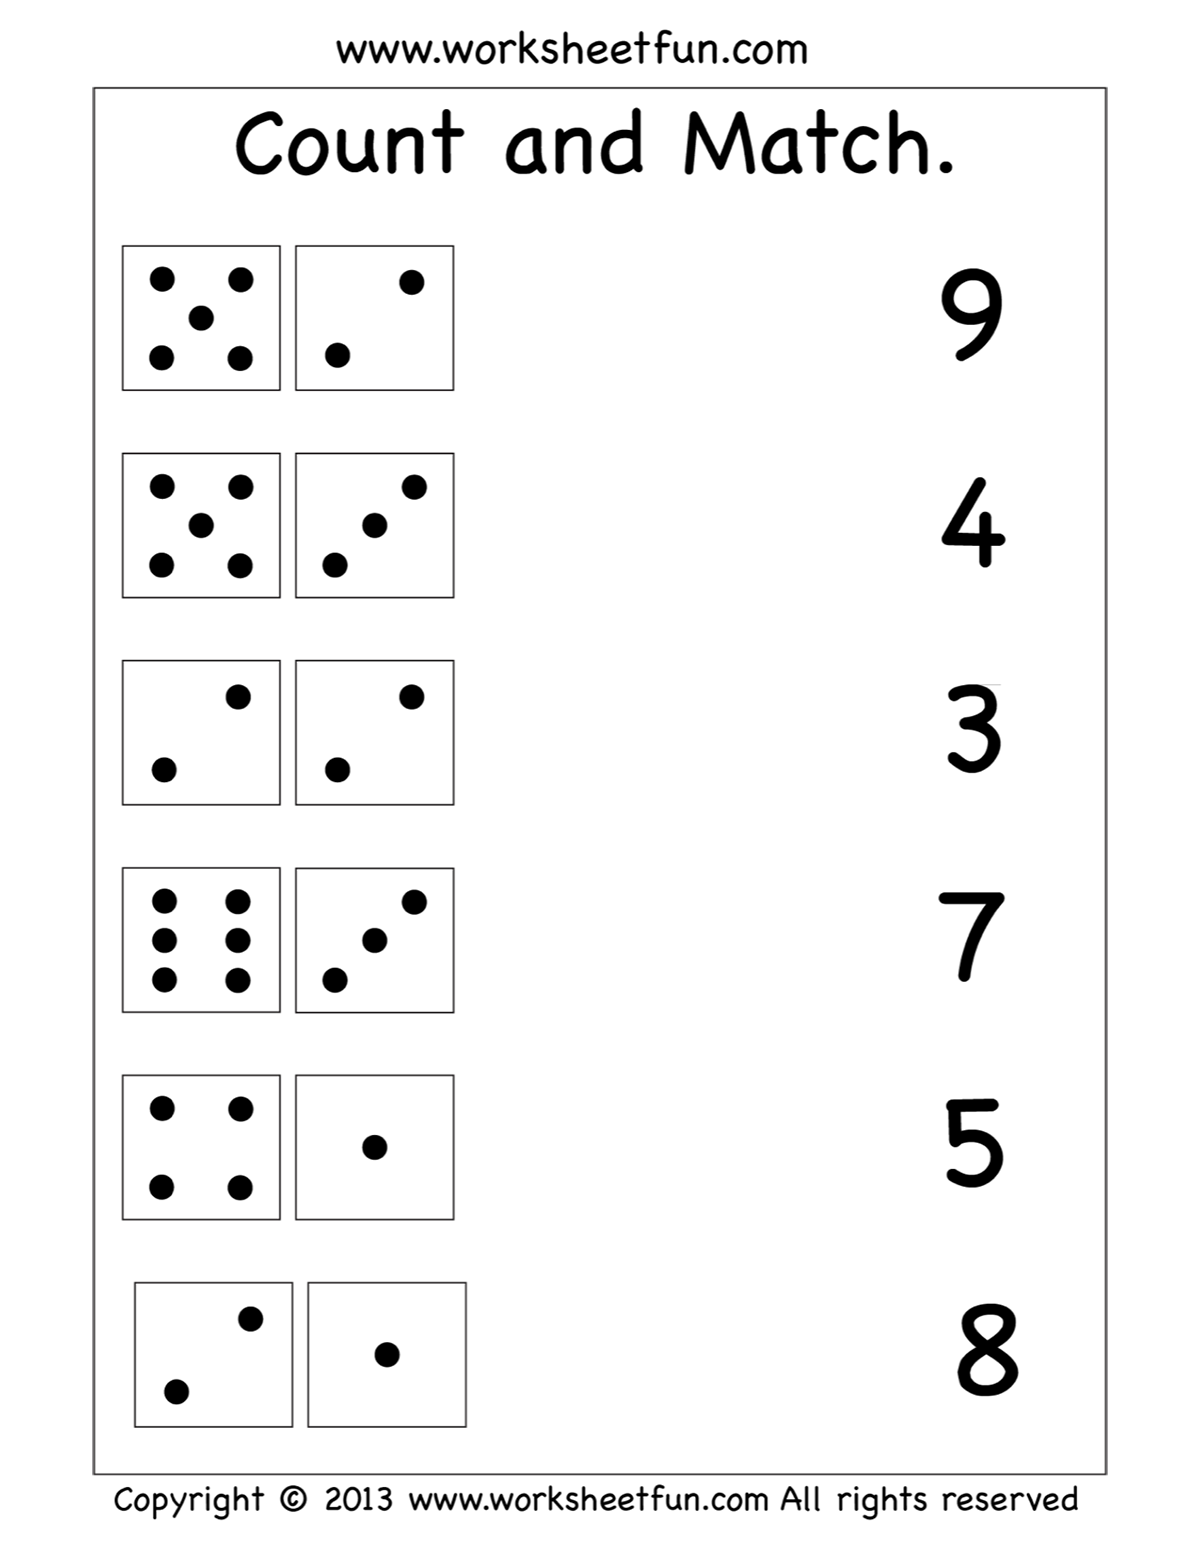 Count And Match Worksheet Preschool Math Worksheets Kindergarten Math Worksheets Kindergarten Math Worksheets Free